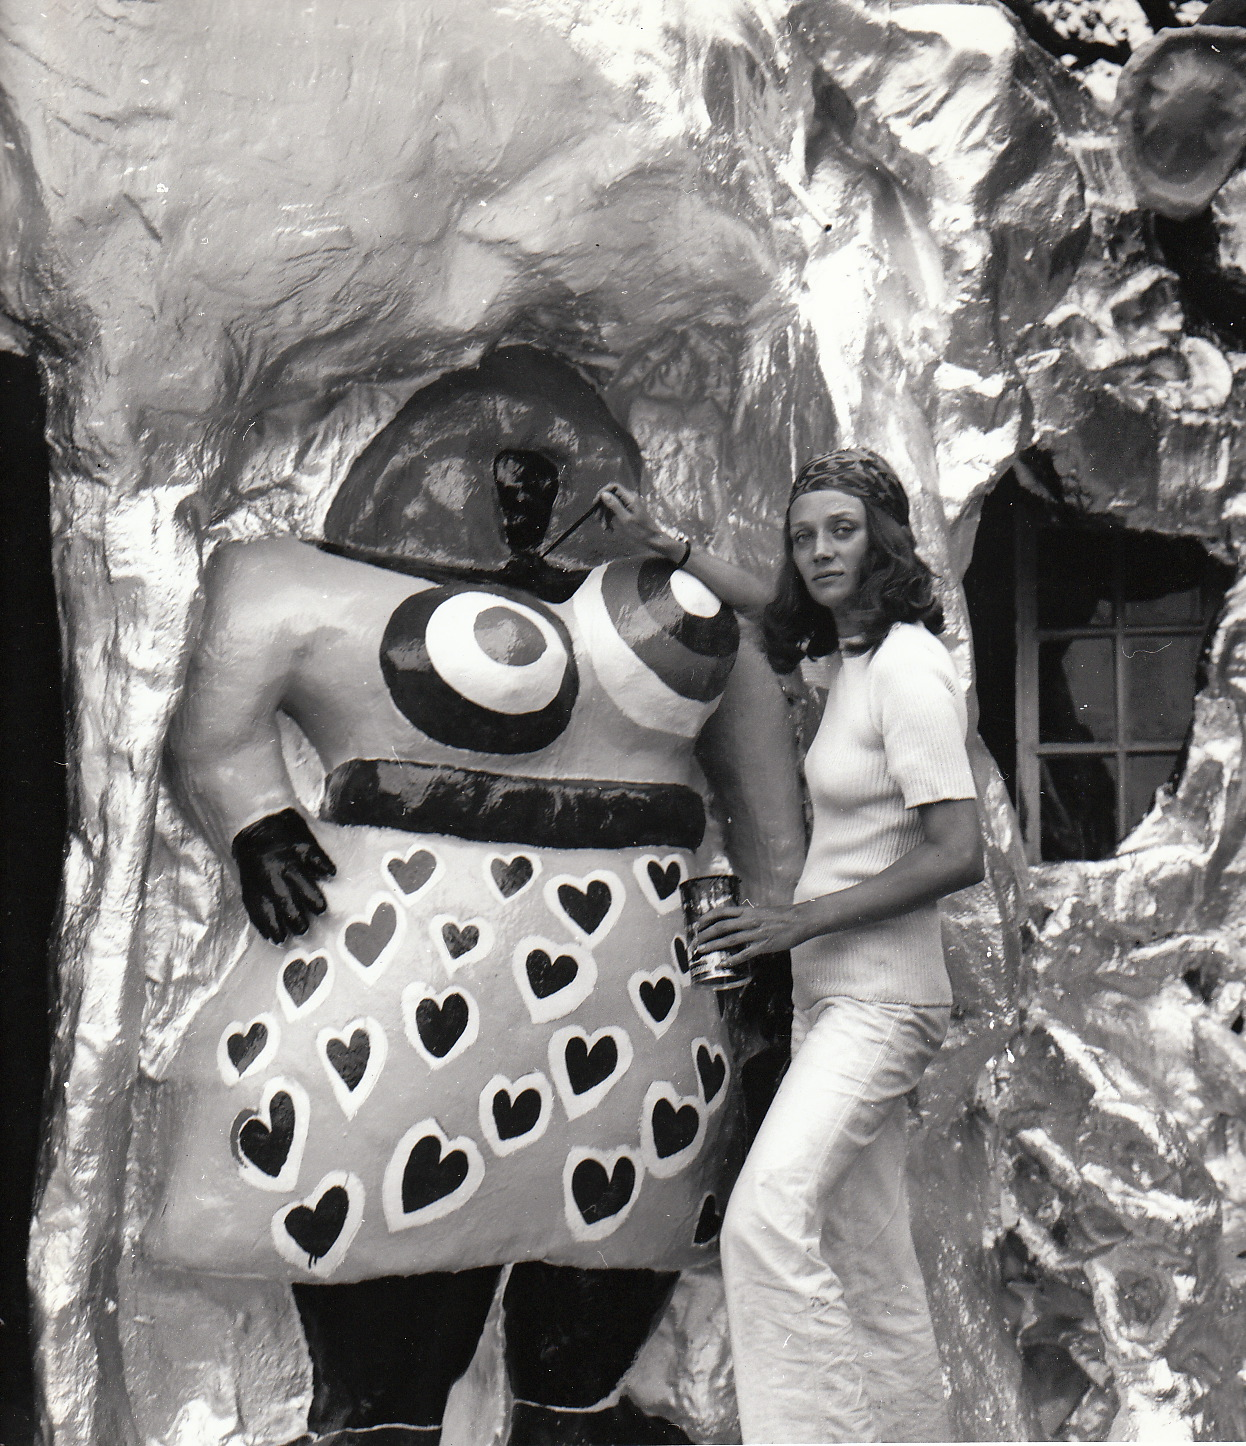 Niki de Saint Phalle looks into the camera as she paints the Nana figure attached to Reve de L'Oiseau. The artist wears a head scarf, white sweater and pants.